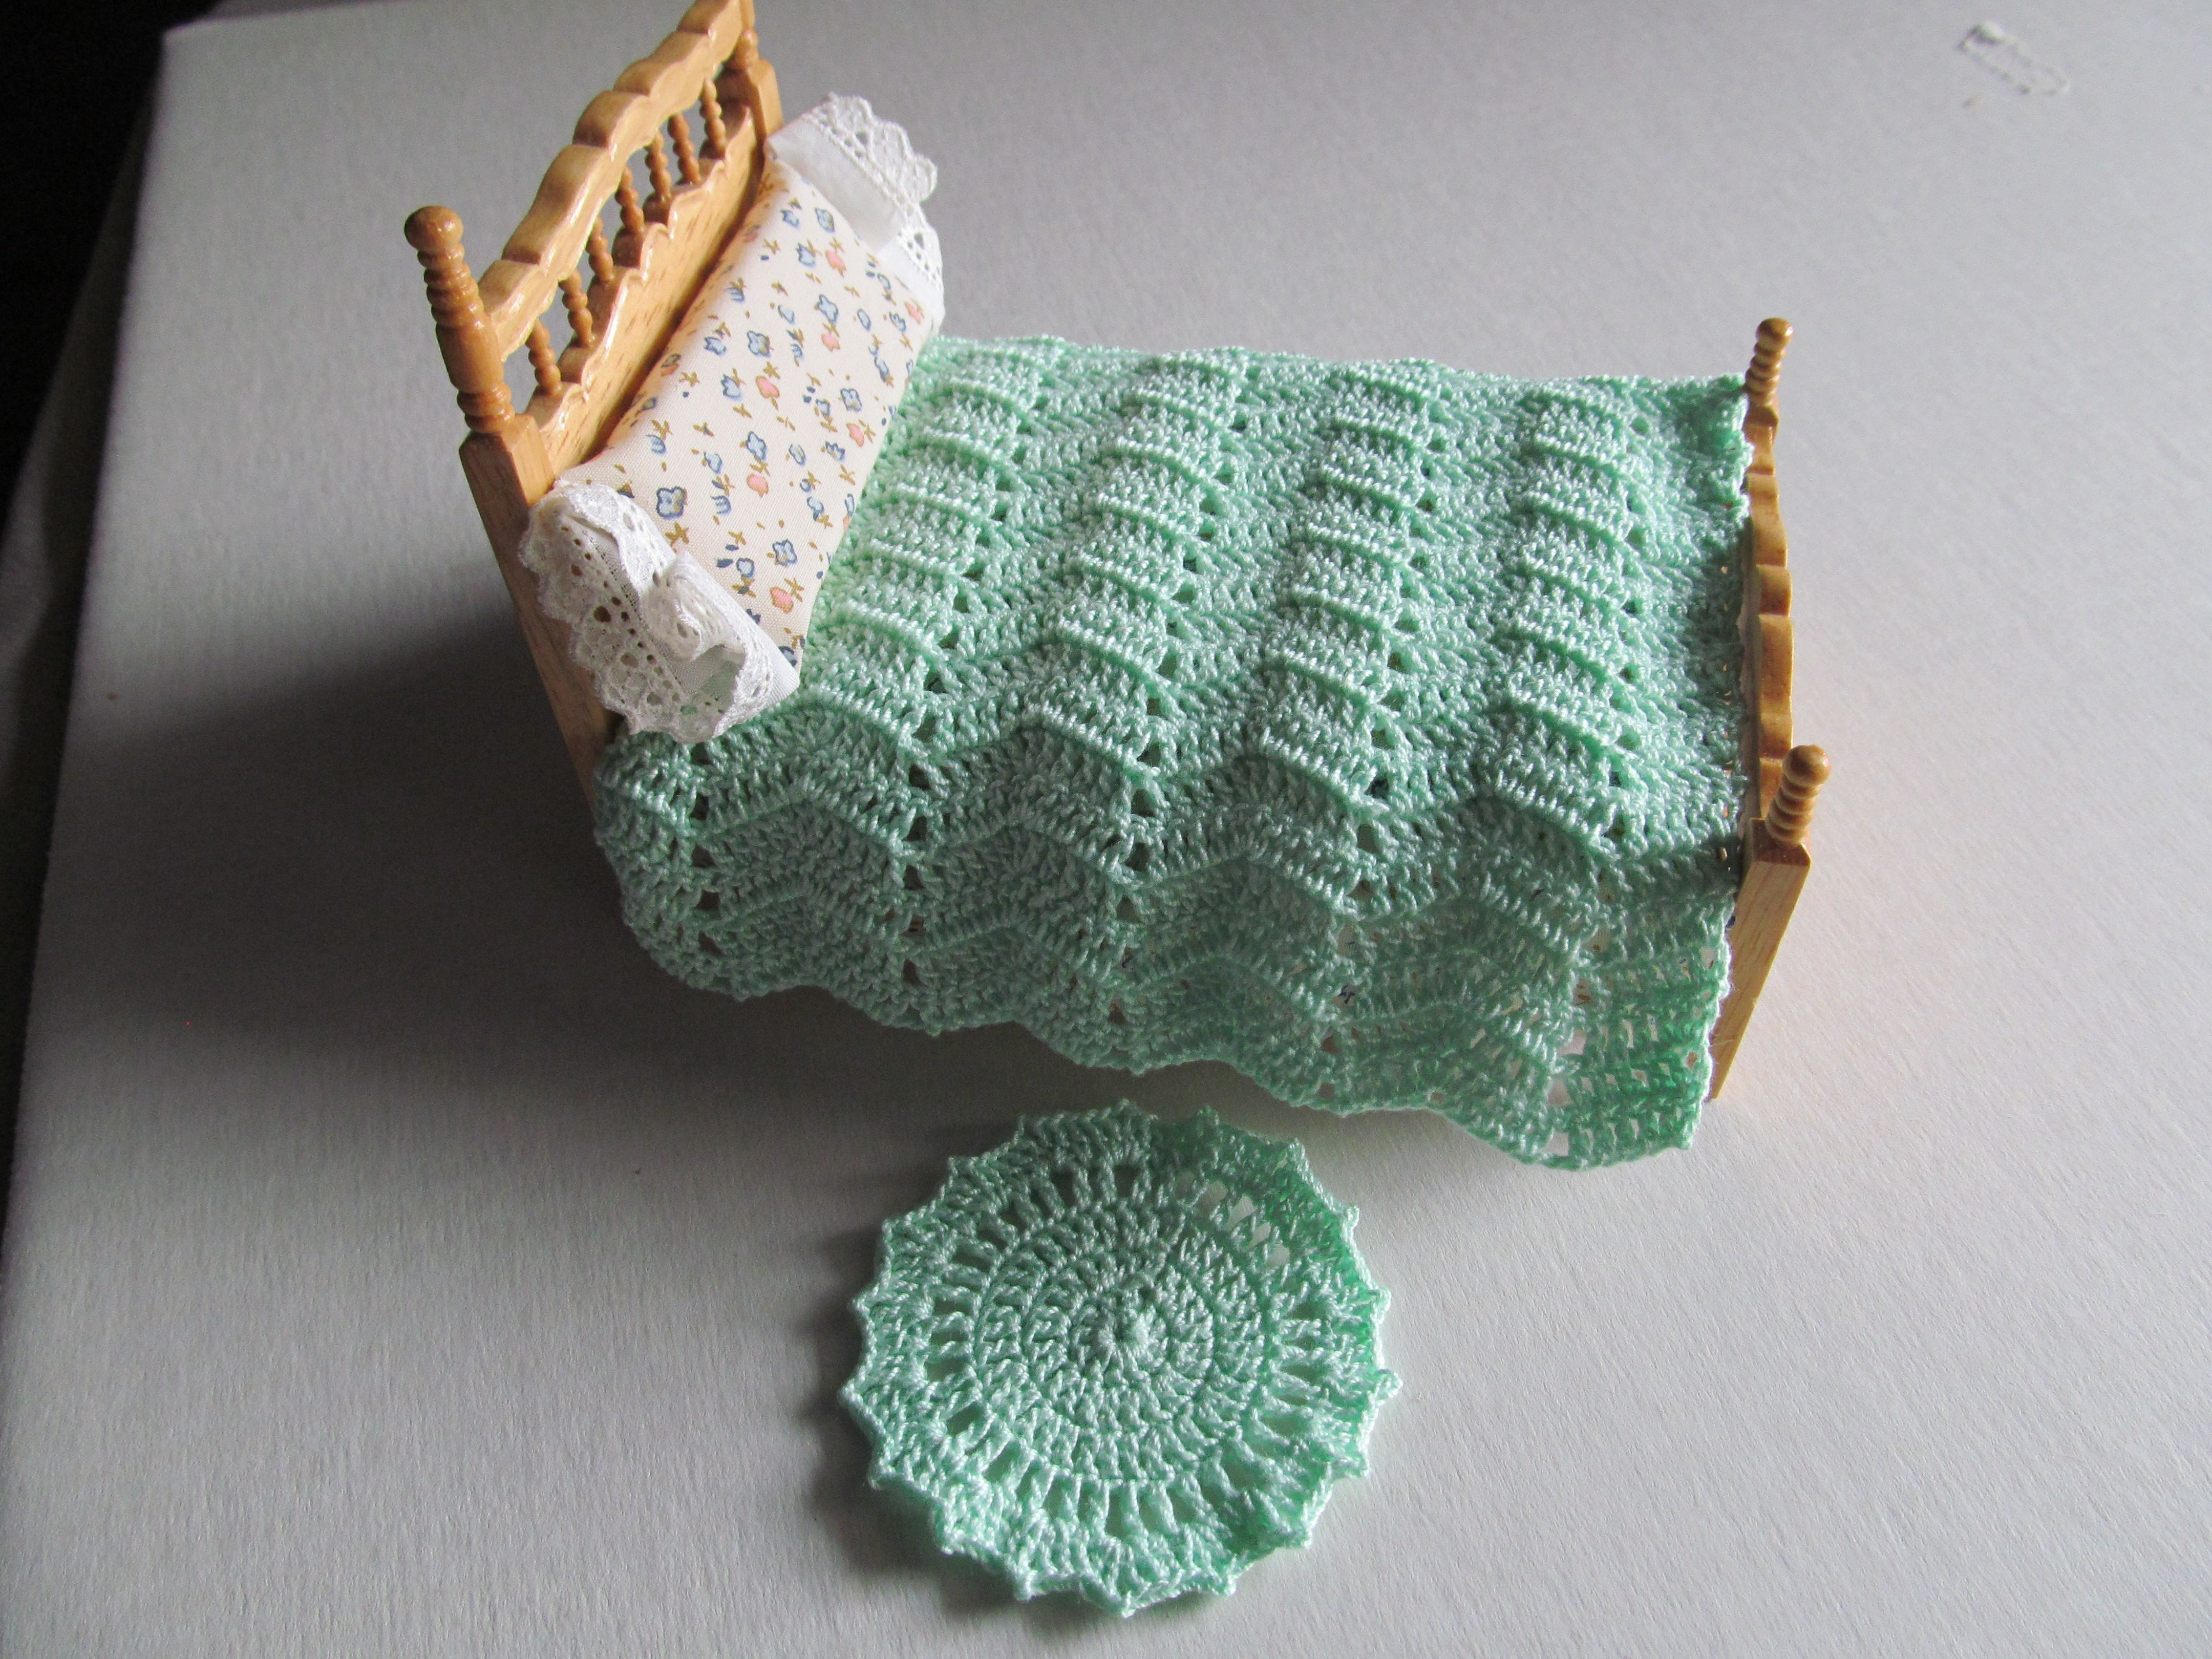 Cotton thread, youth bed and rug.